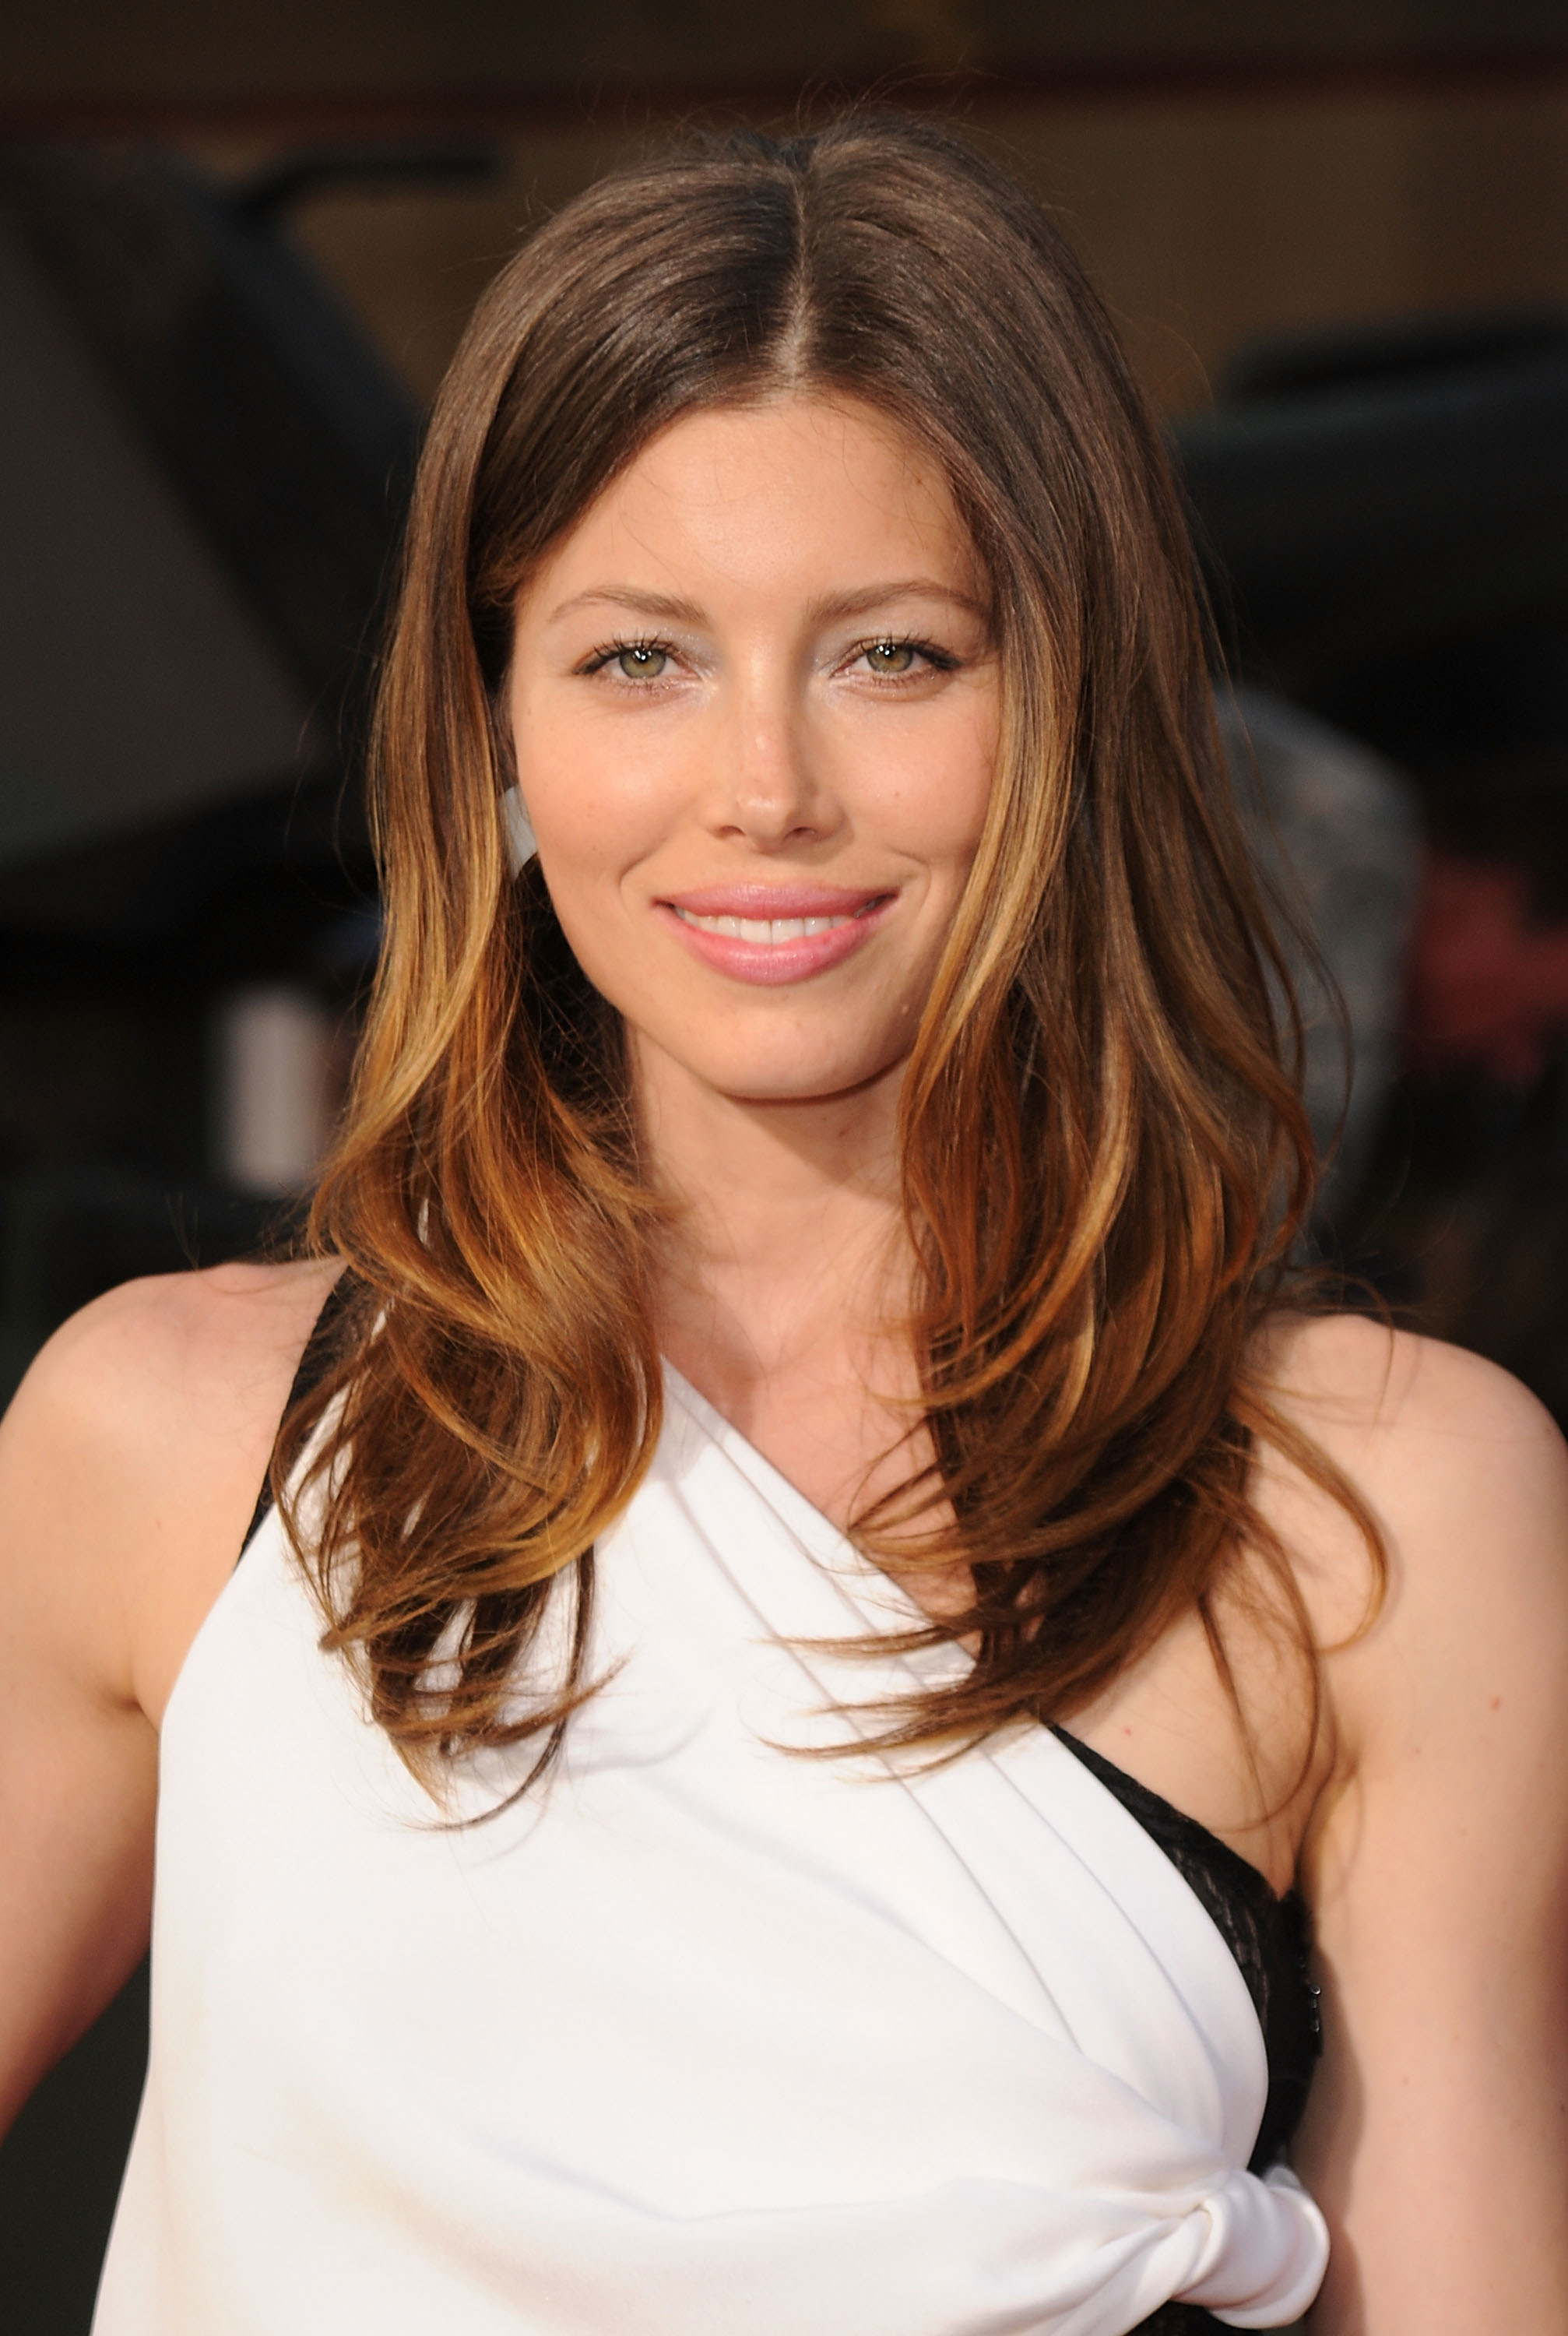 Jessica Biel In A White Dress At The A Team Premiere In La